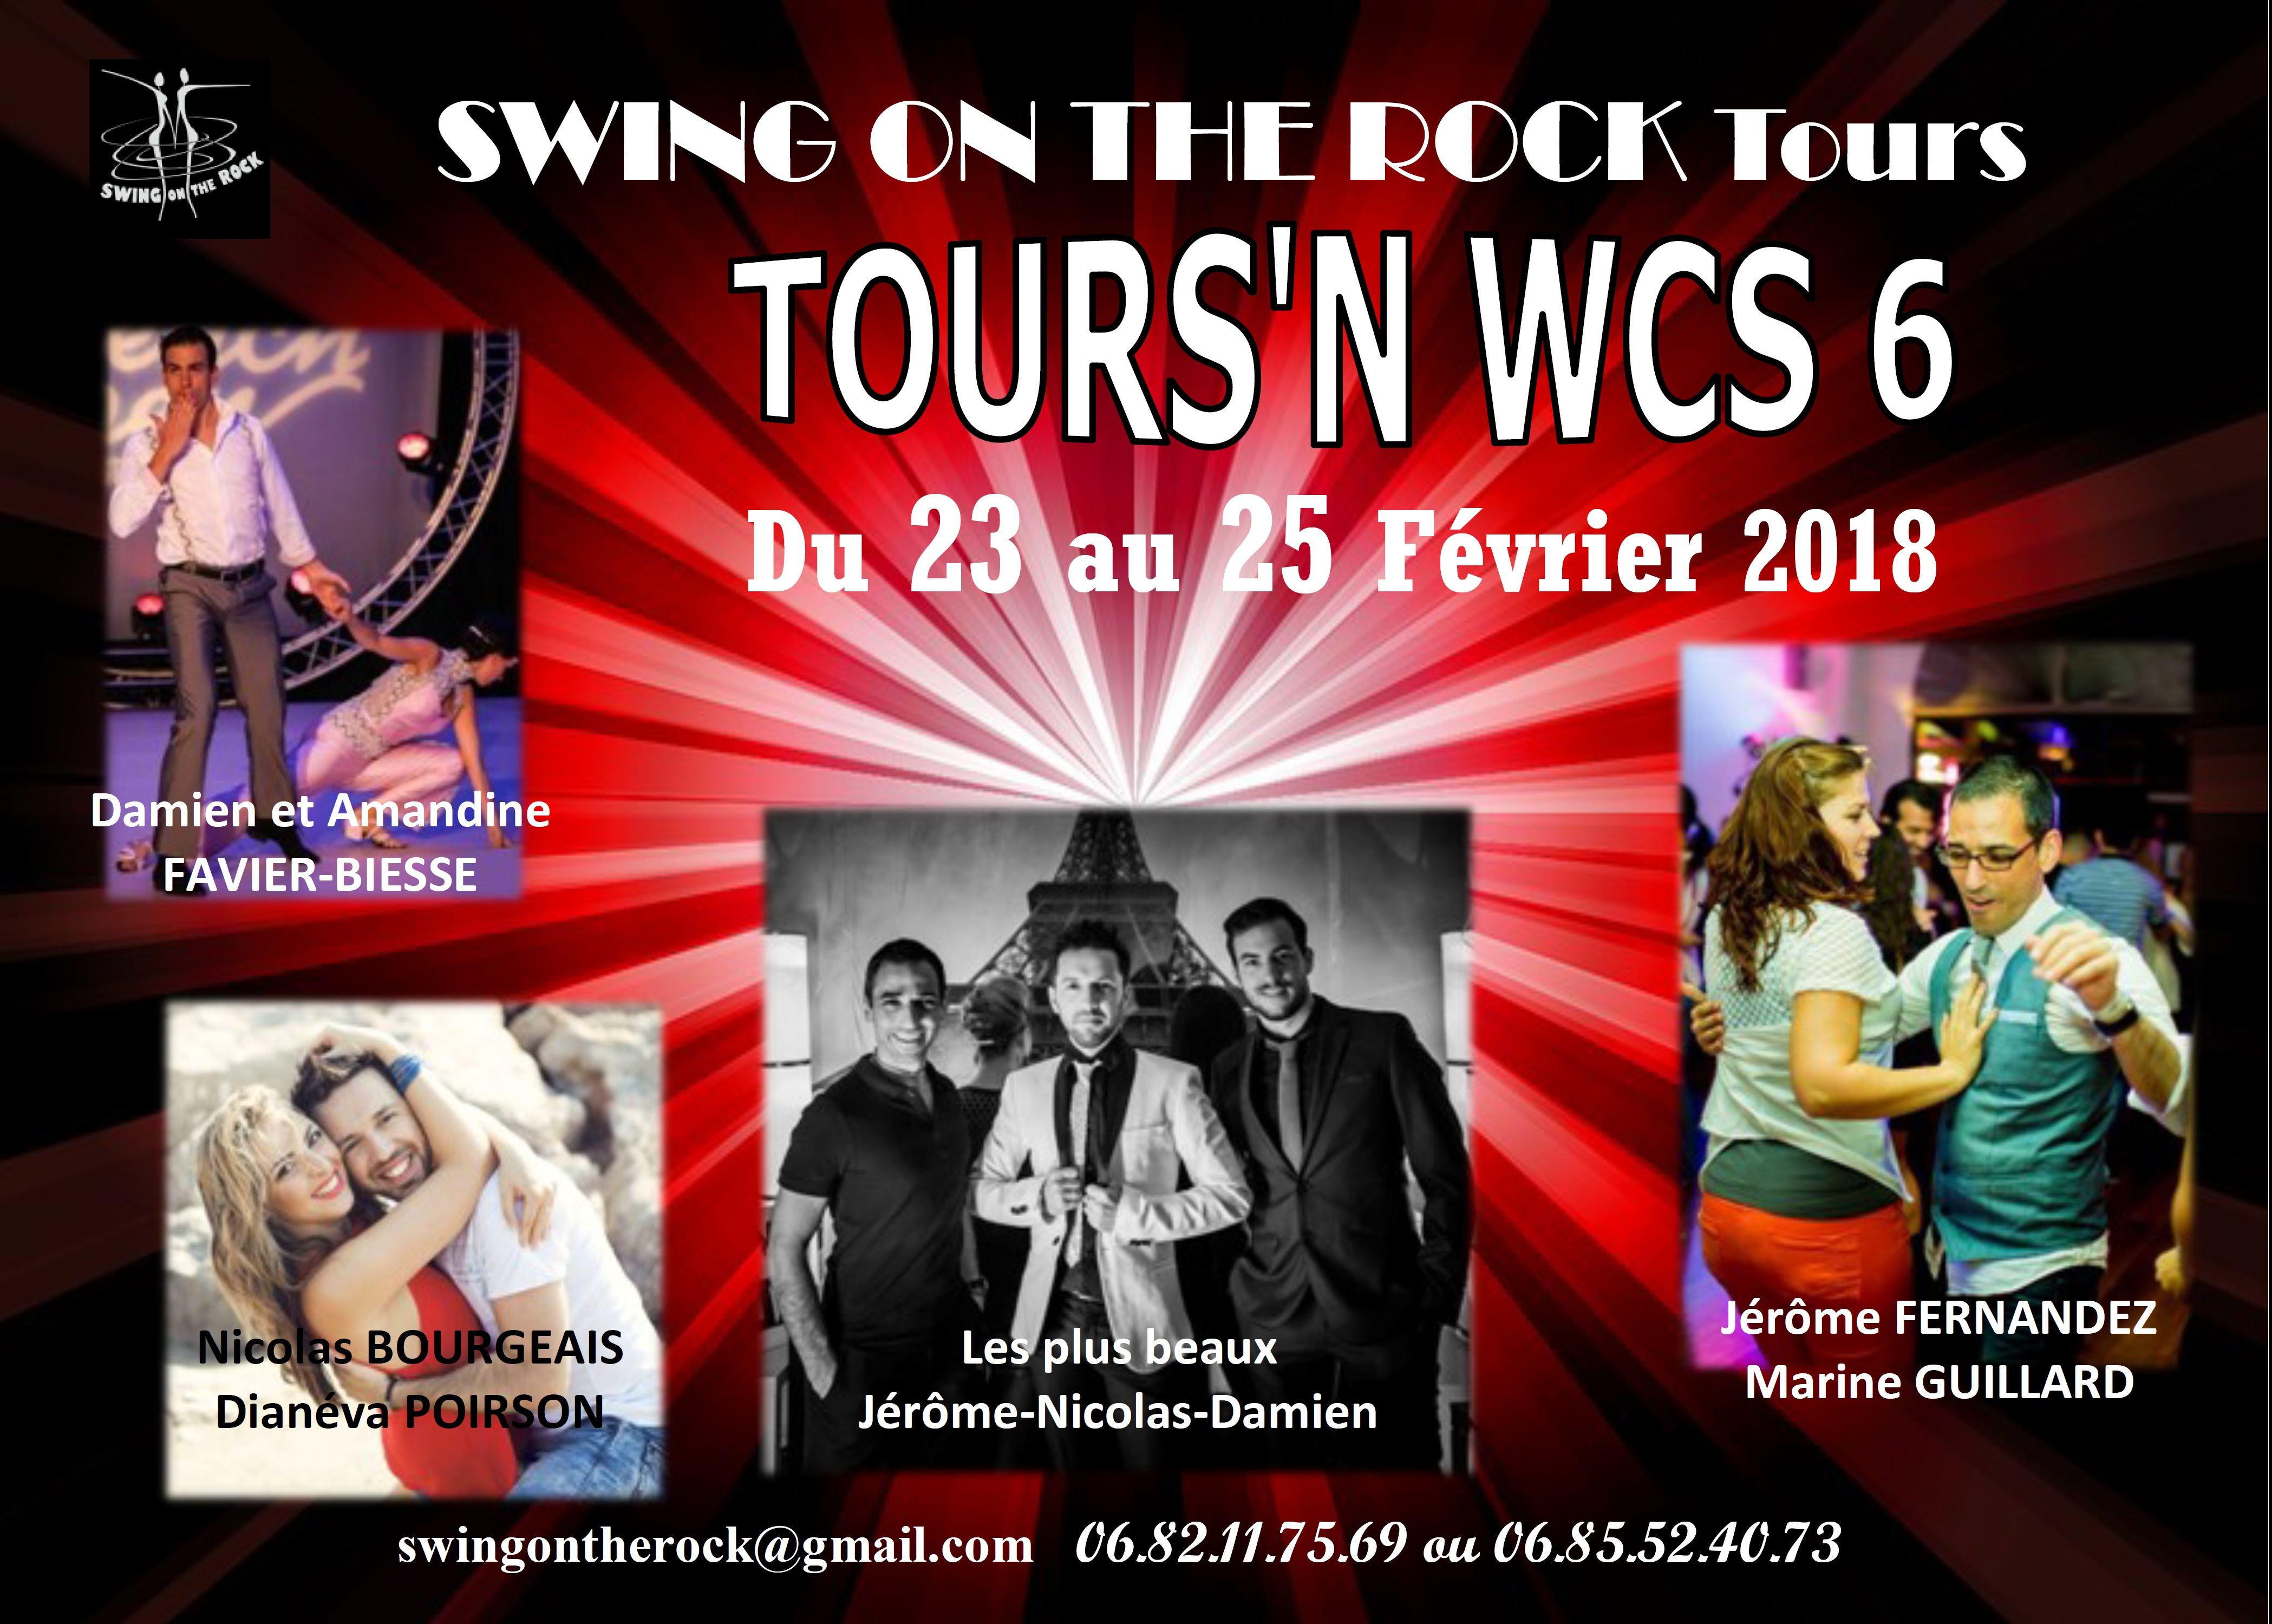 tl_files/swing-on-the-rock/images/recto fly stage wcs 2018.jpg